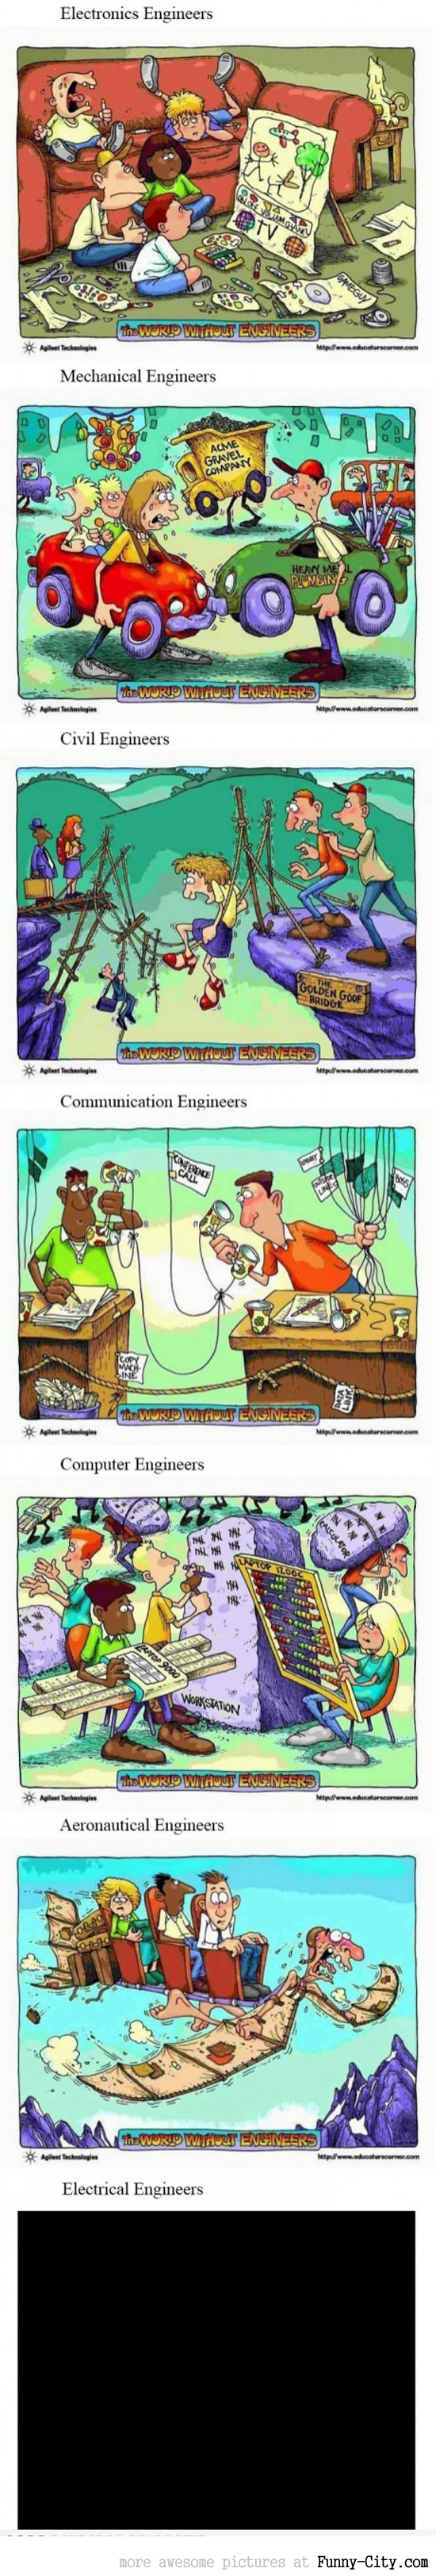 World Without Engineers Cartoons